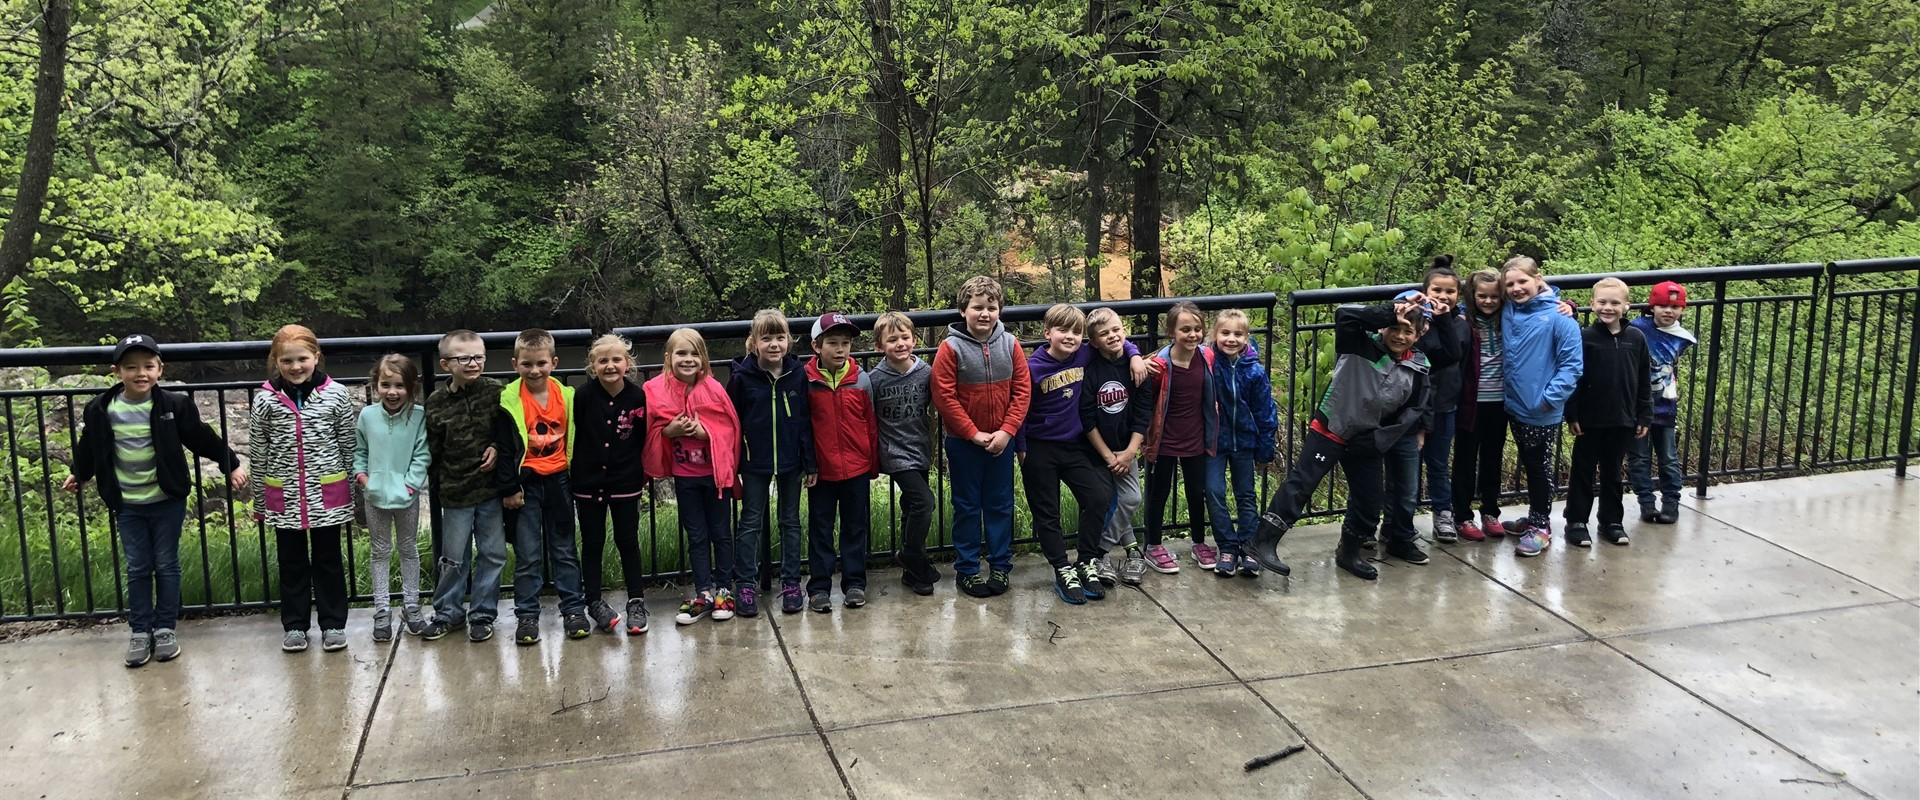 The first graders enjoyed their trip to Ramsey Park in Redwood Falls.